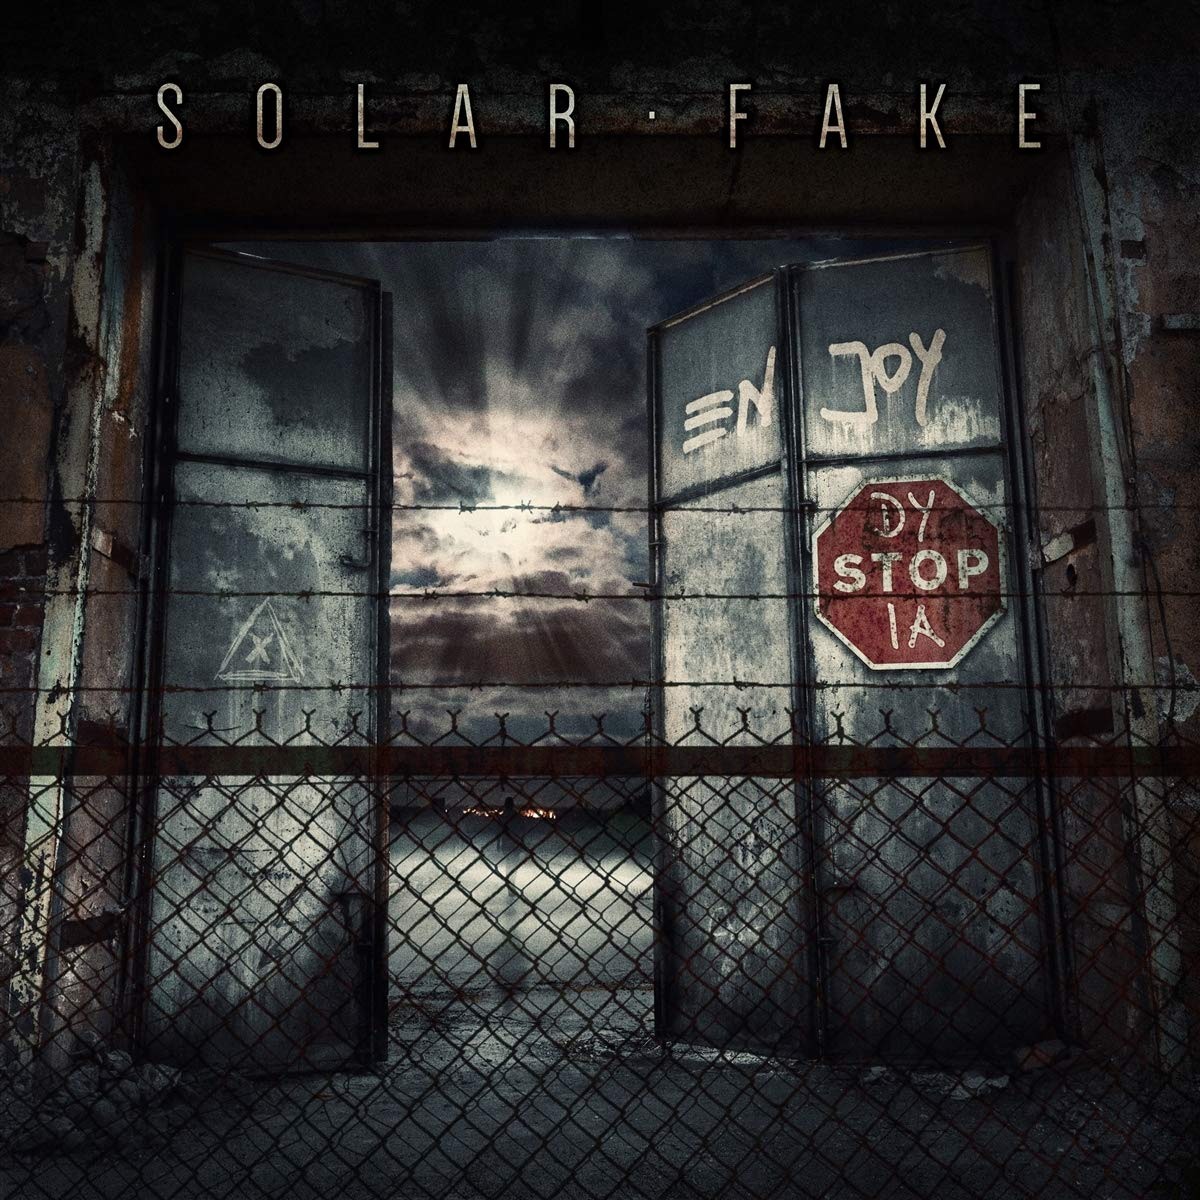 Solar Fake: Enjoy Dystopia (2021) Book Cover